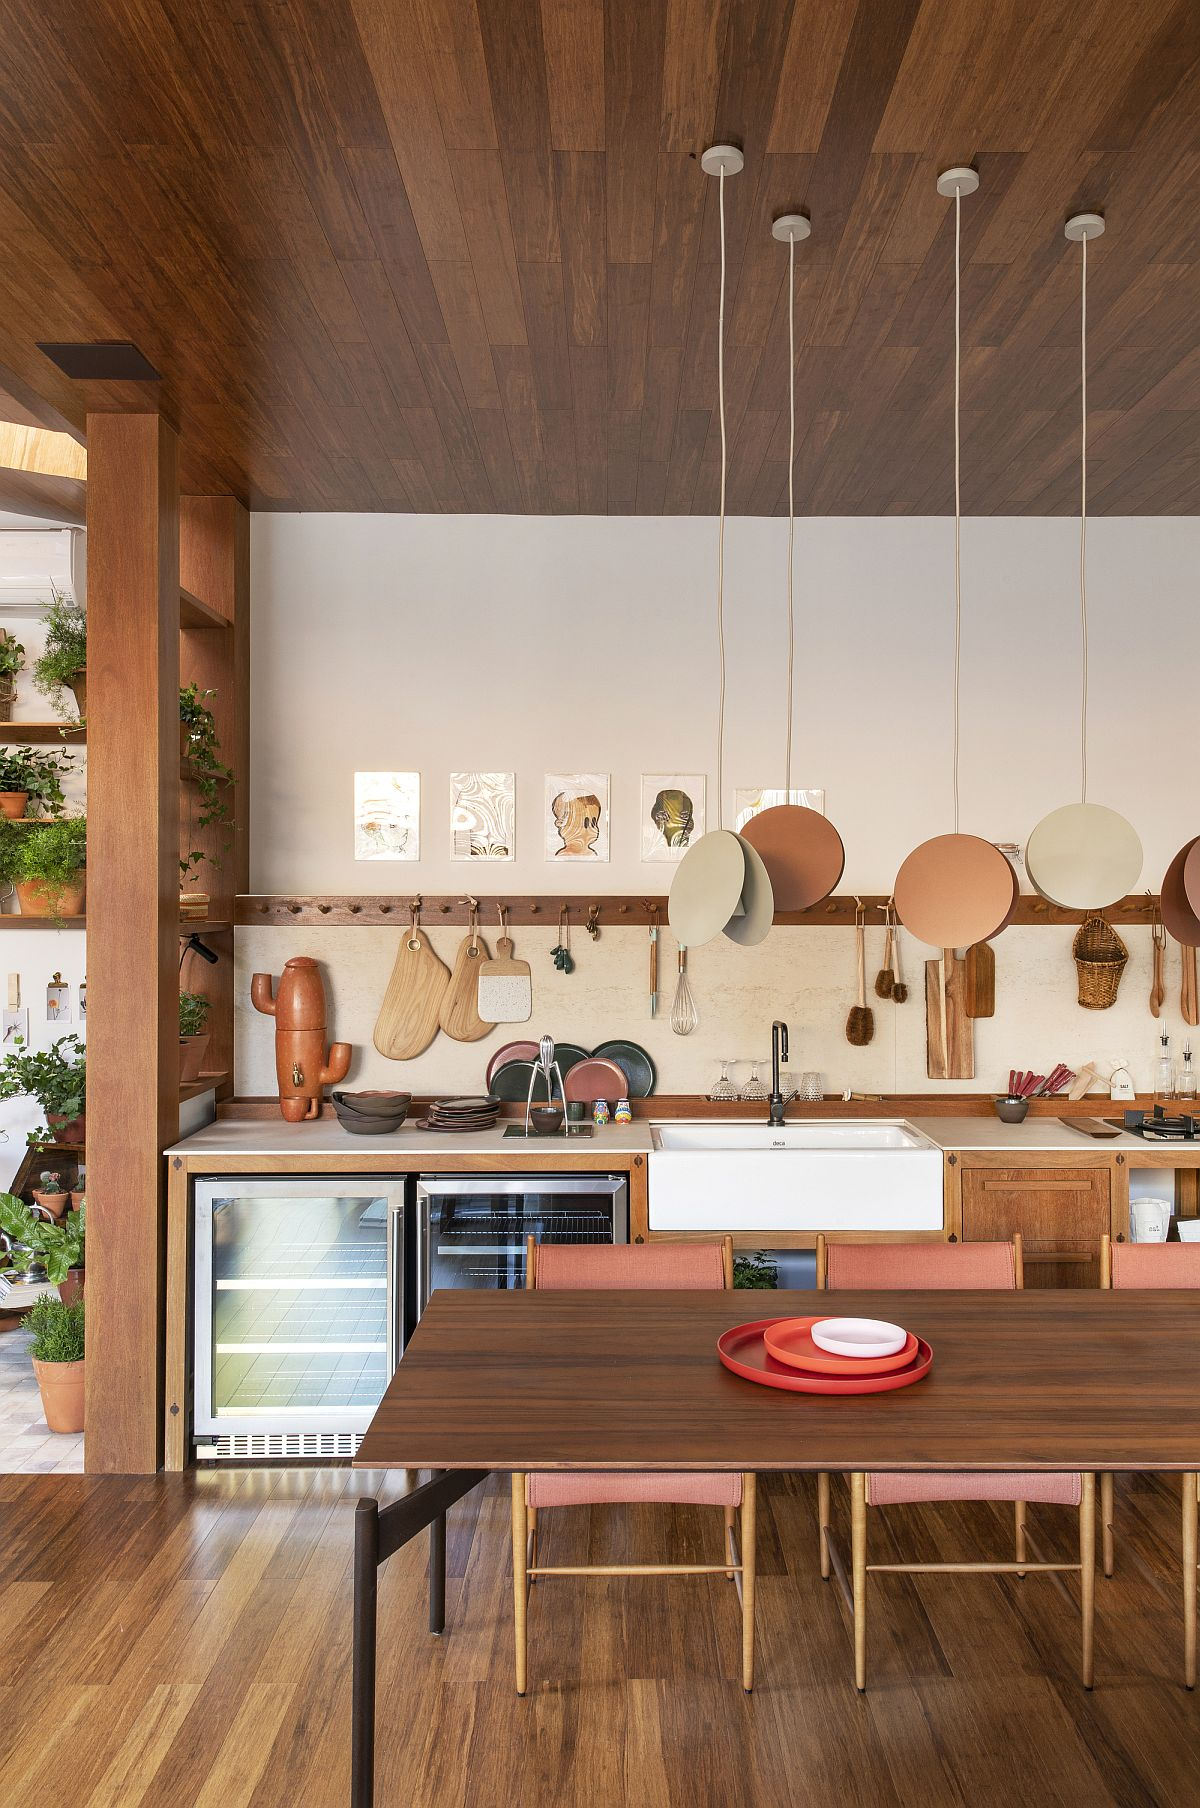 Unique pendant lights illuminate the dining area and blend into the backdrop